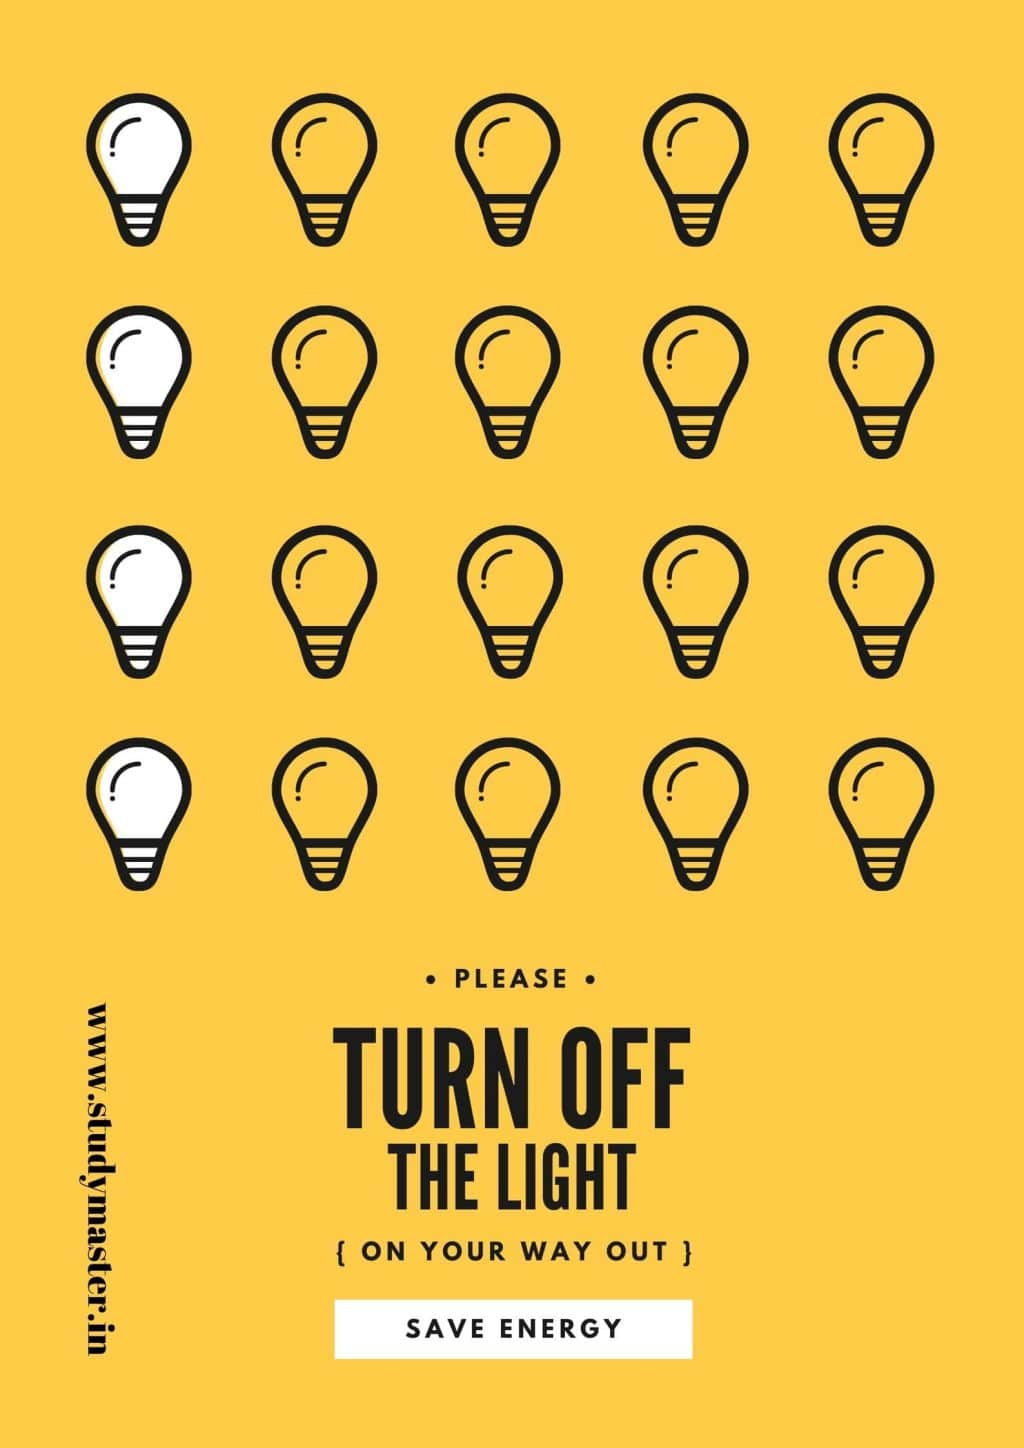 poster on save energy